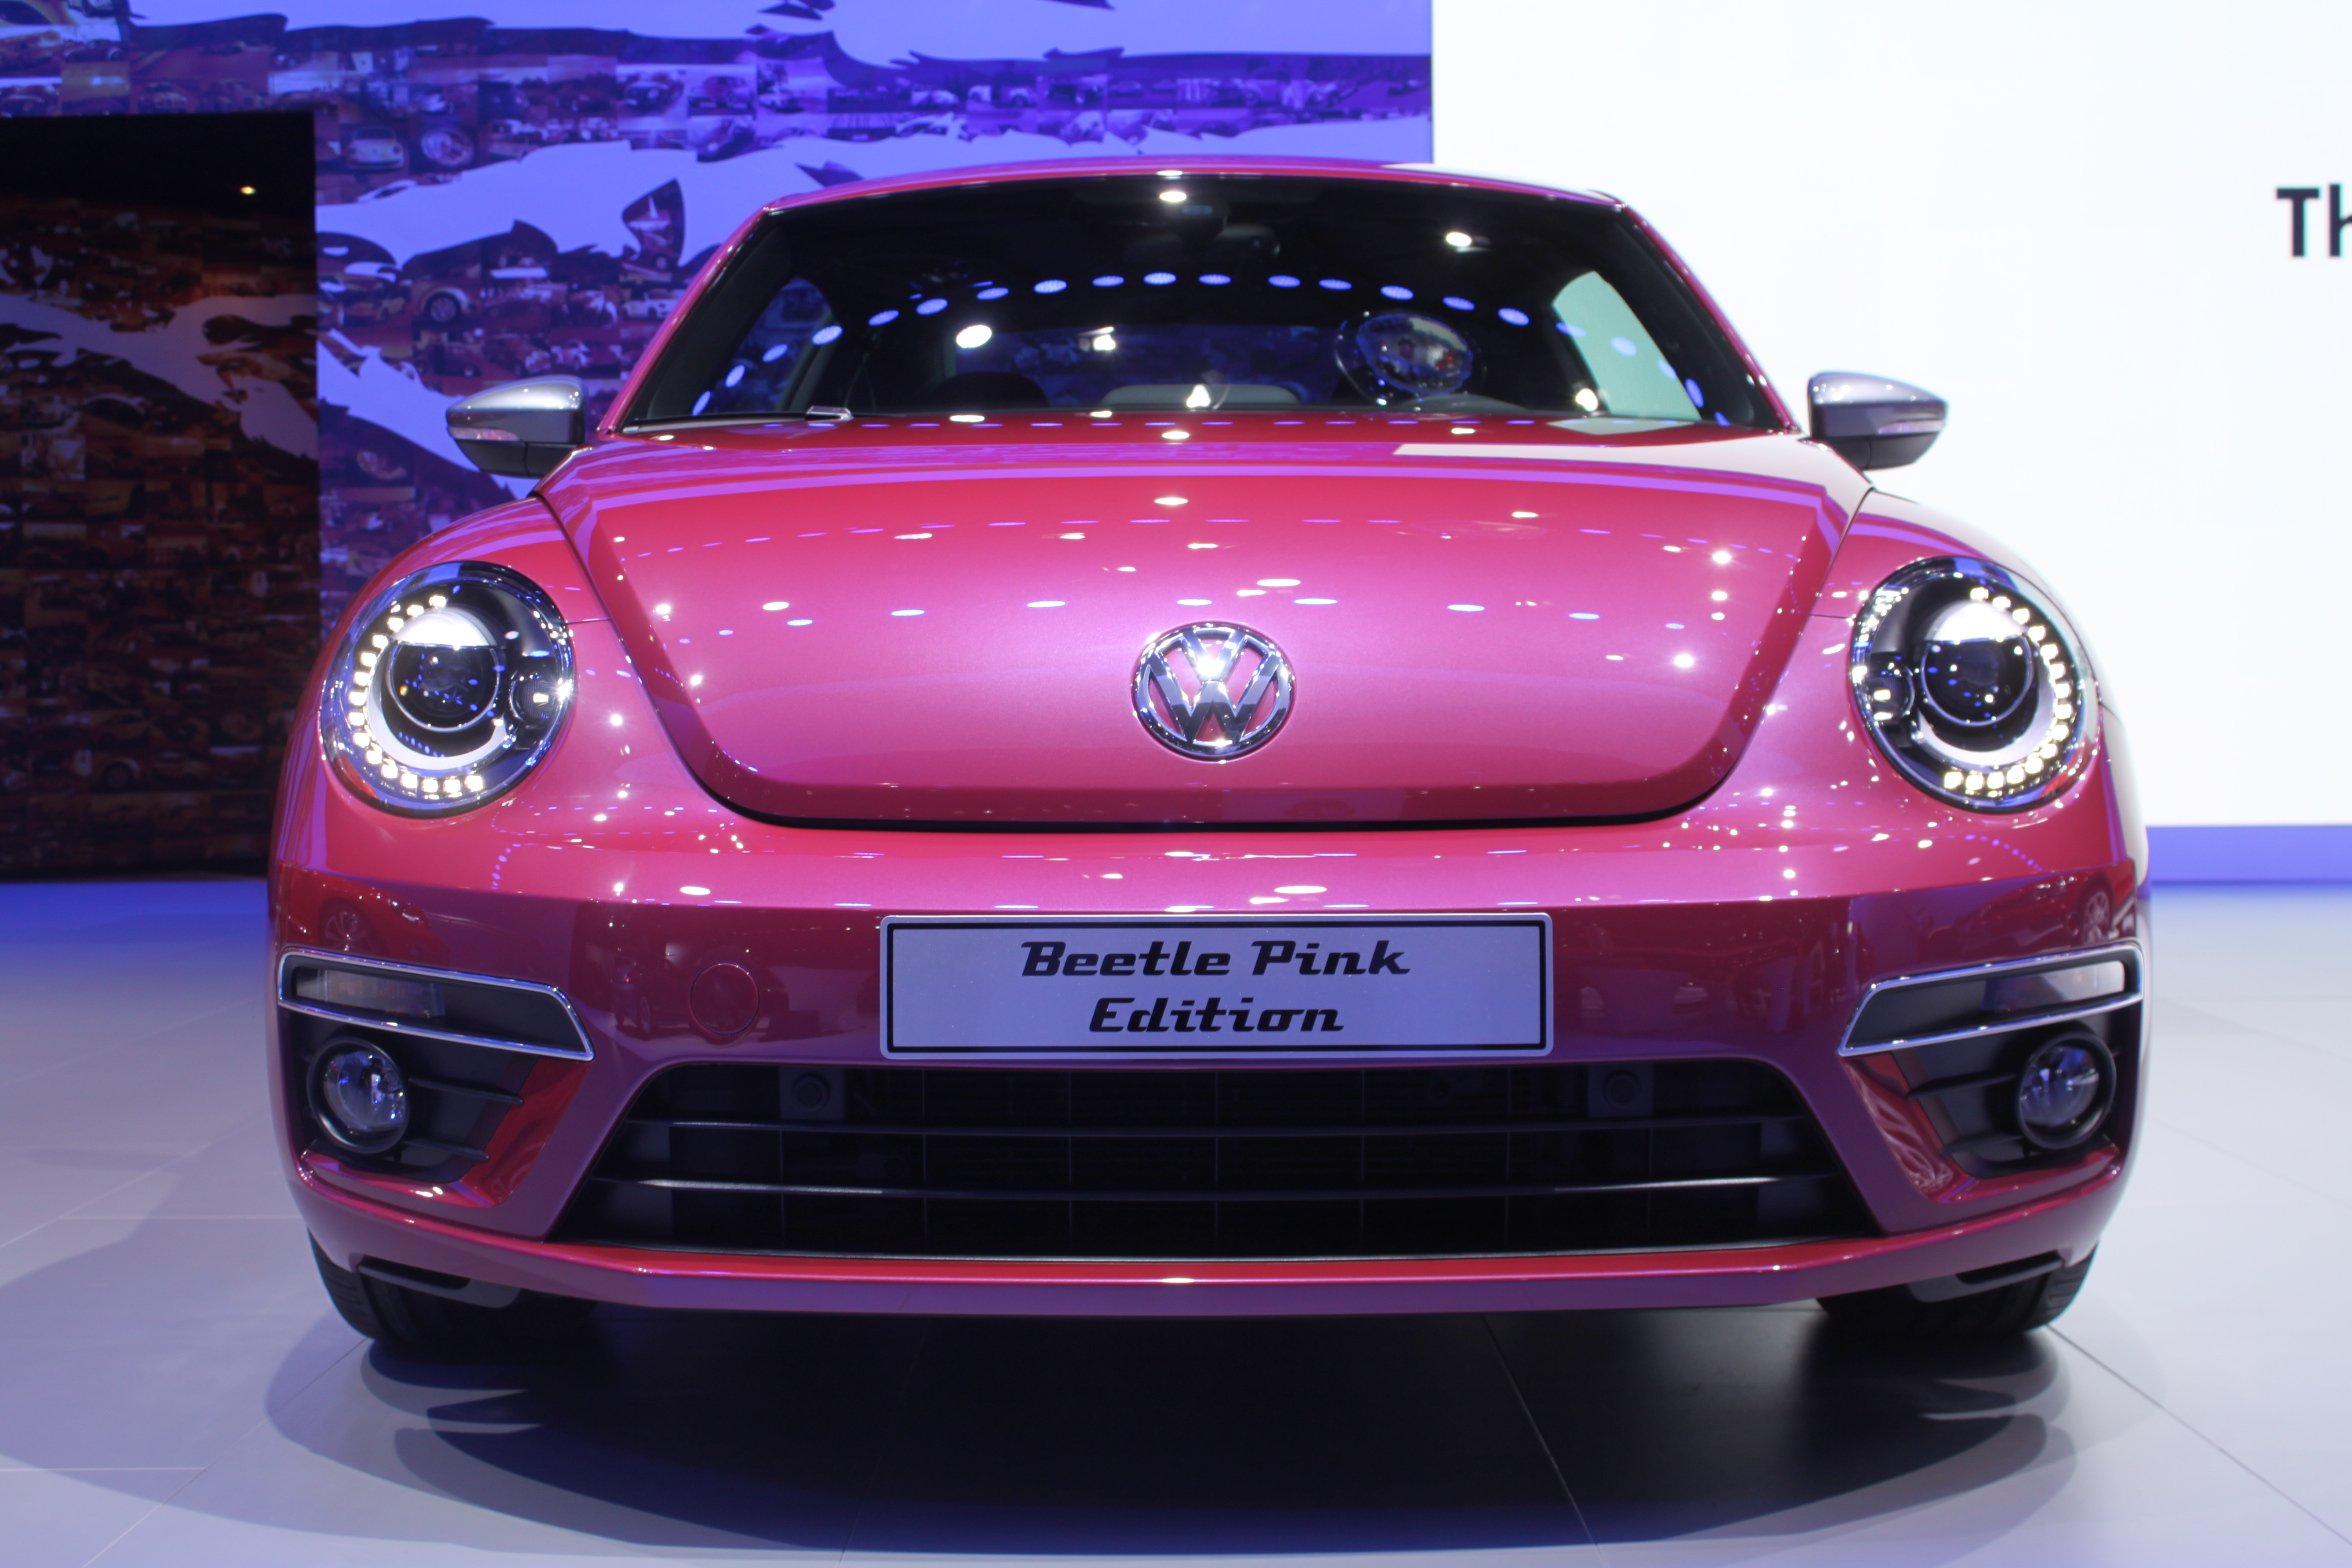 chippy pink photo france beetle owner release ok stock volkswagen vw cox